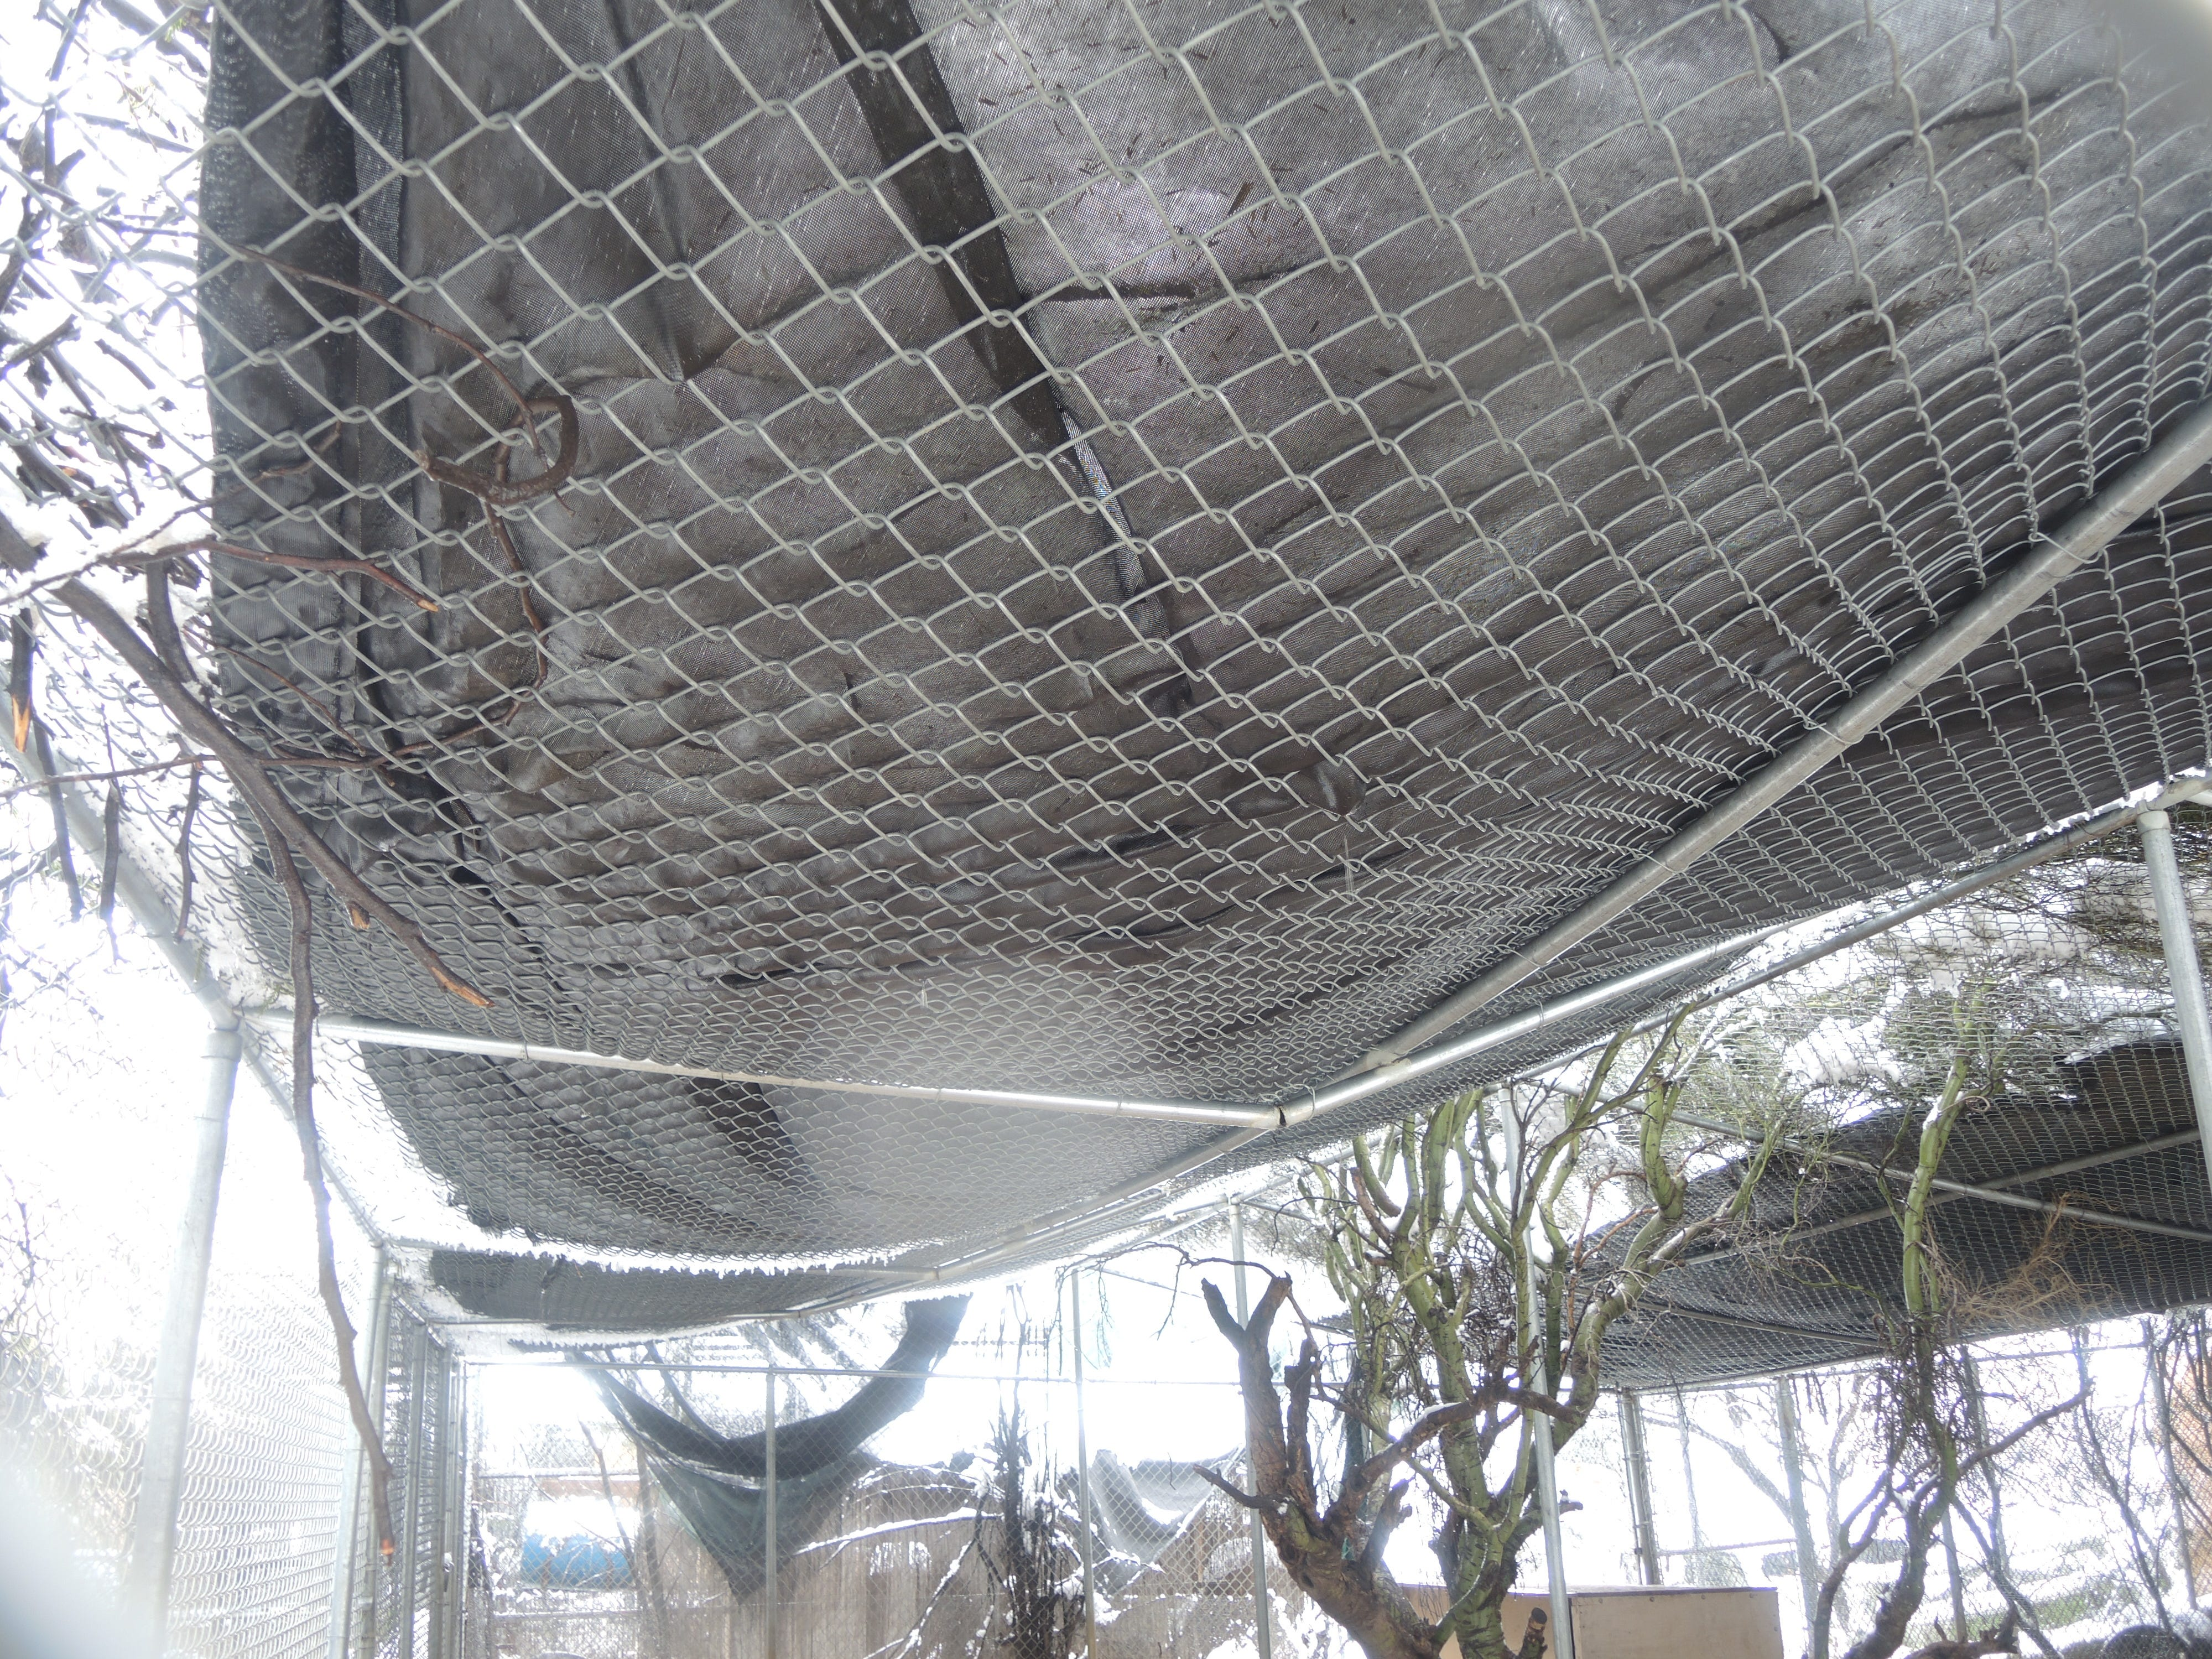 Collapsed roof at Southwest Wildlife Conservation Center